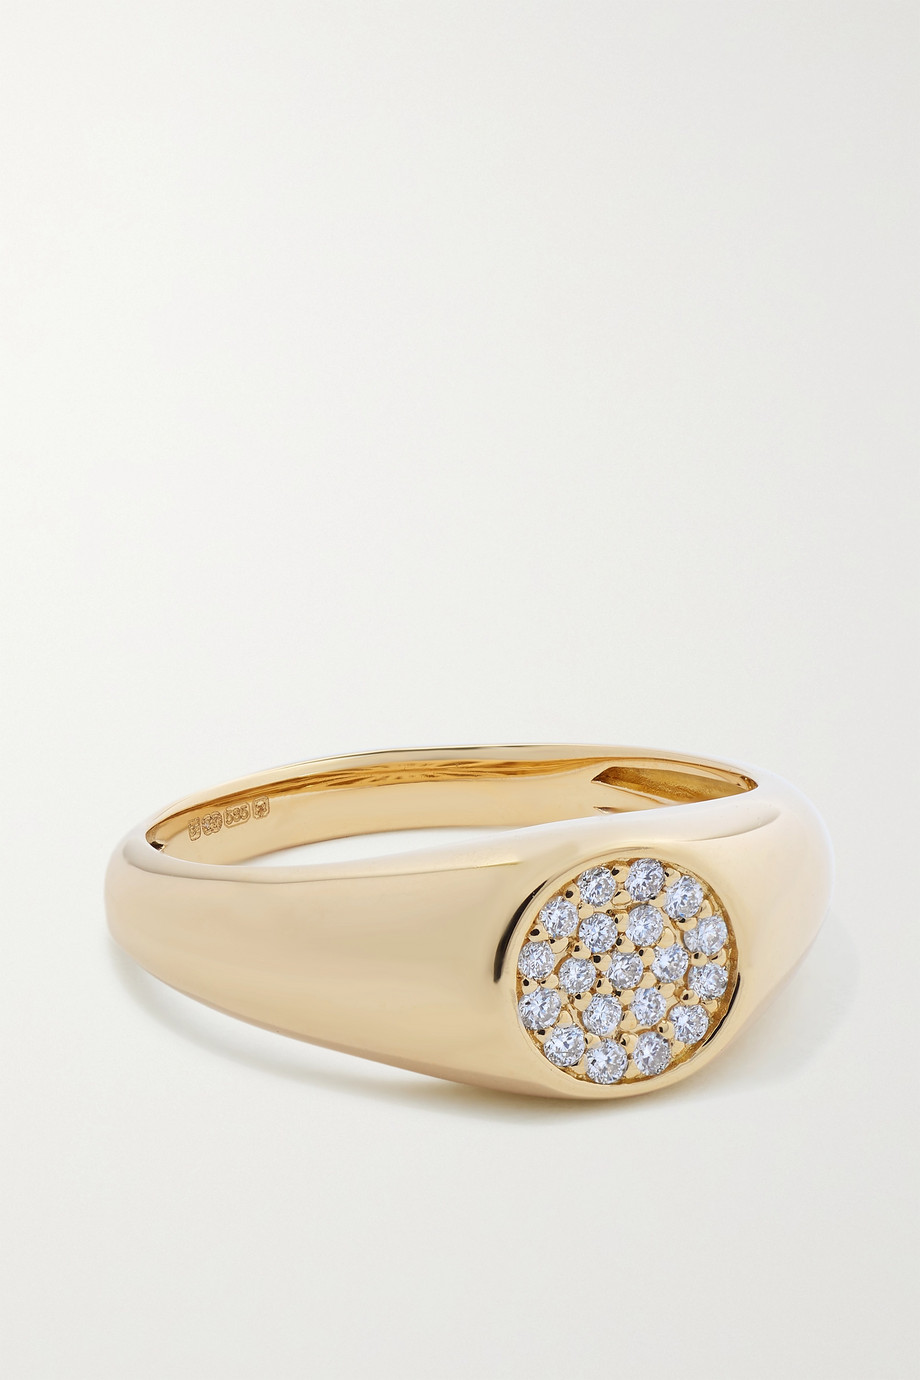 Sydney Evan Mini 14-karat gold diamond signet ring